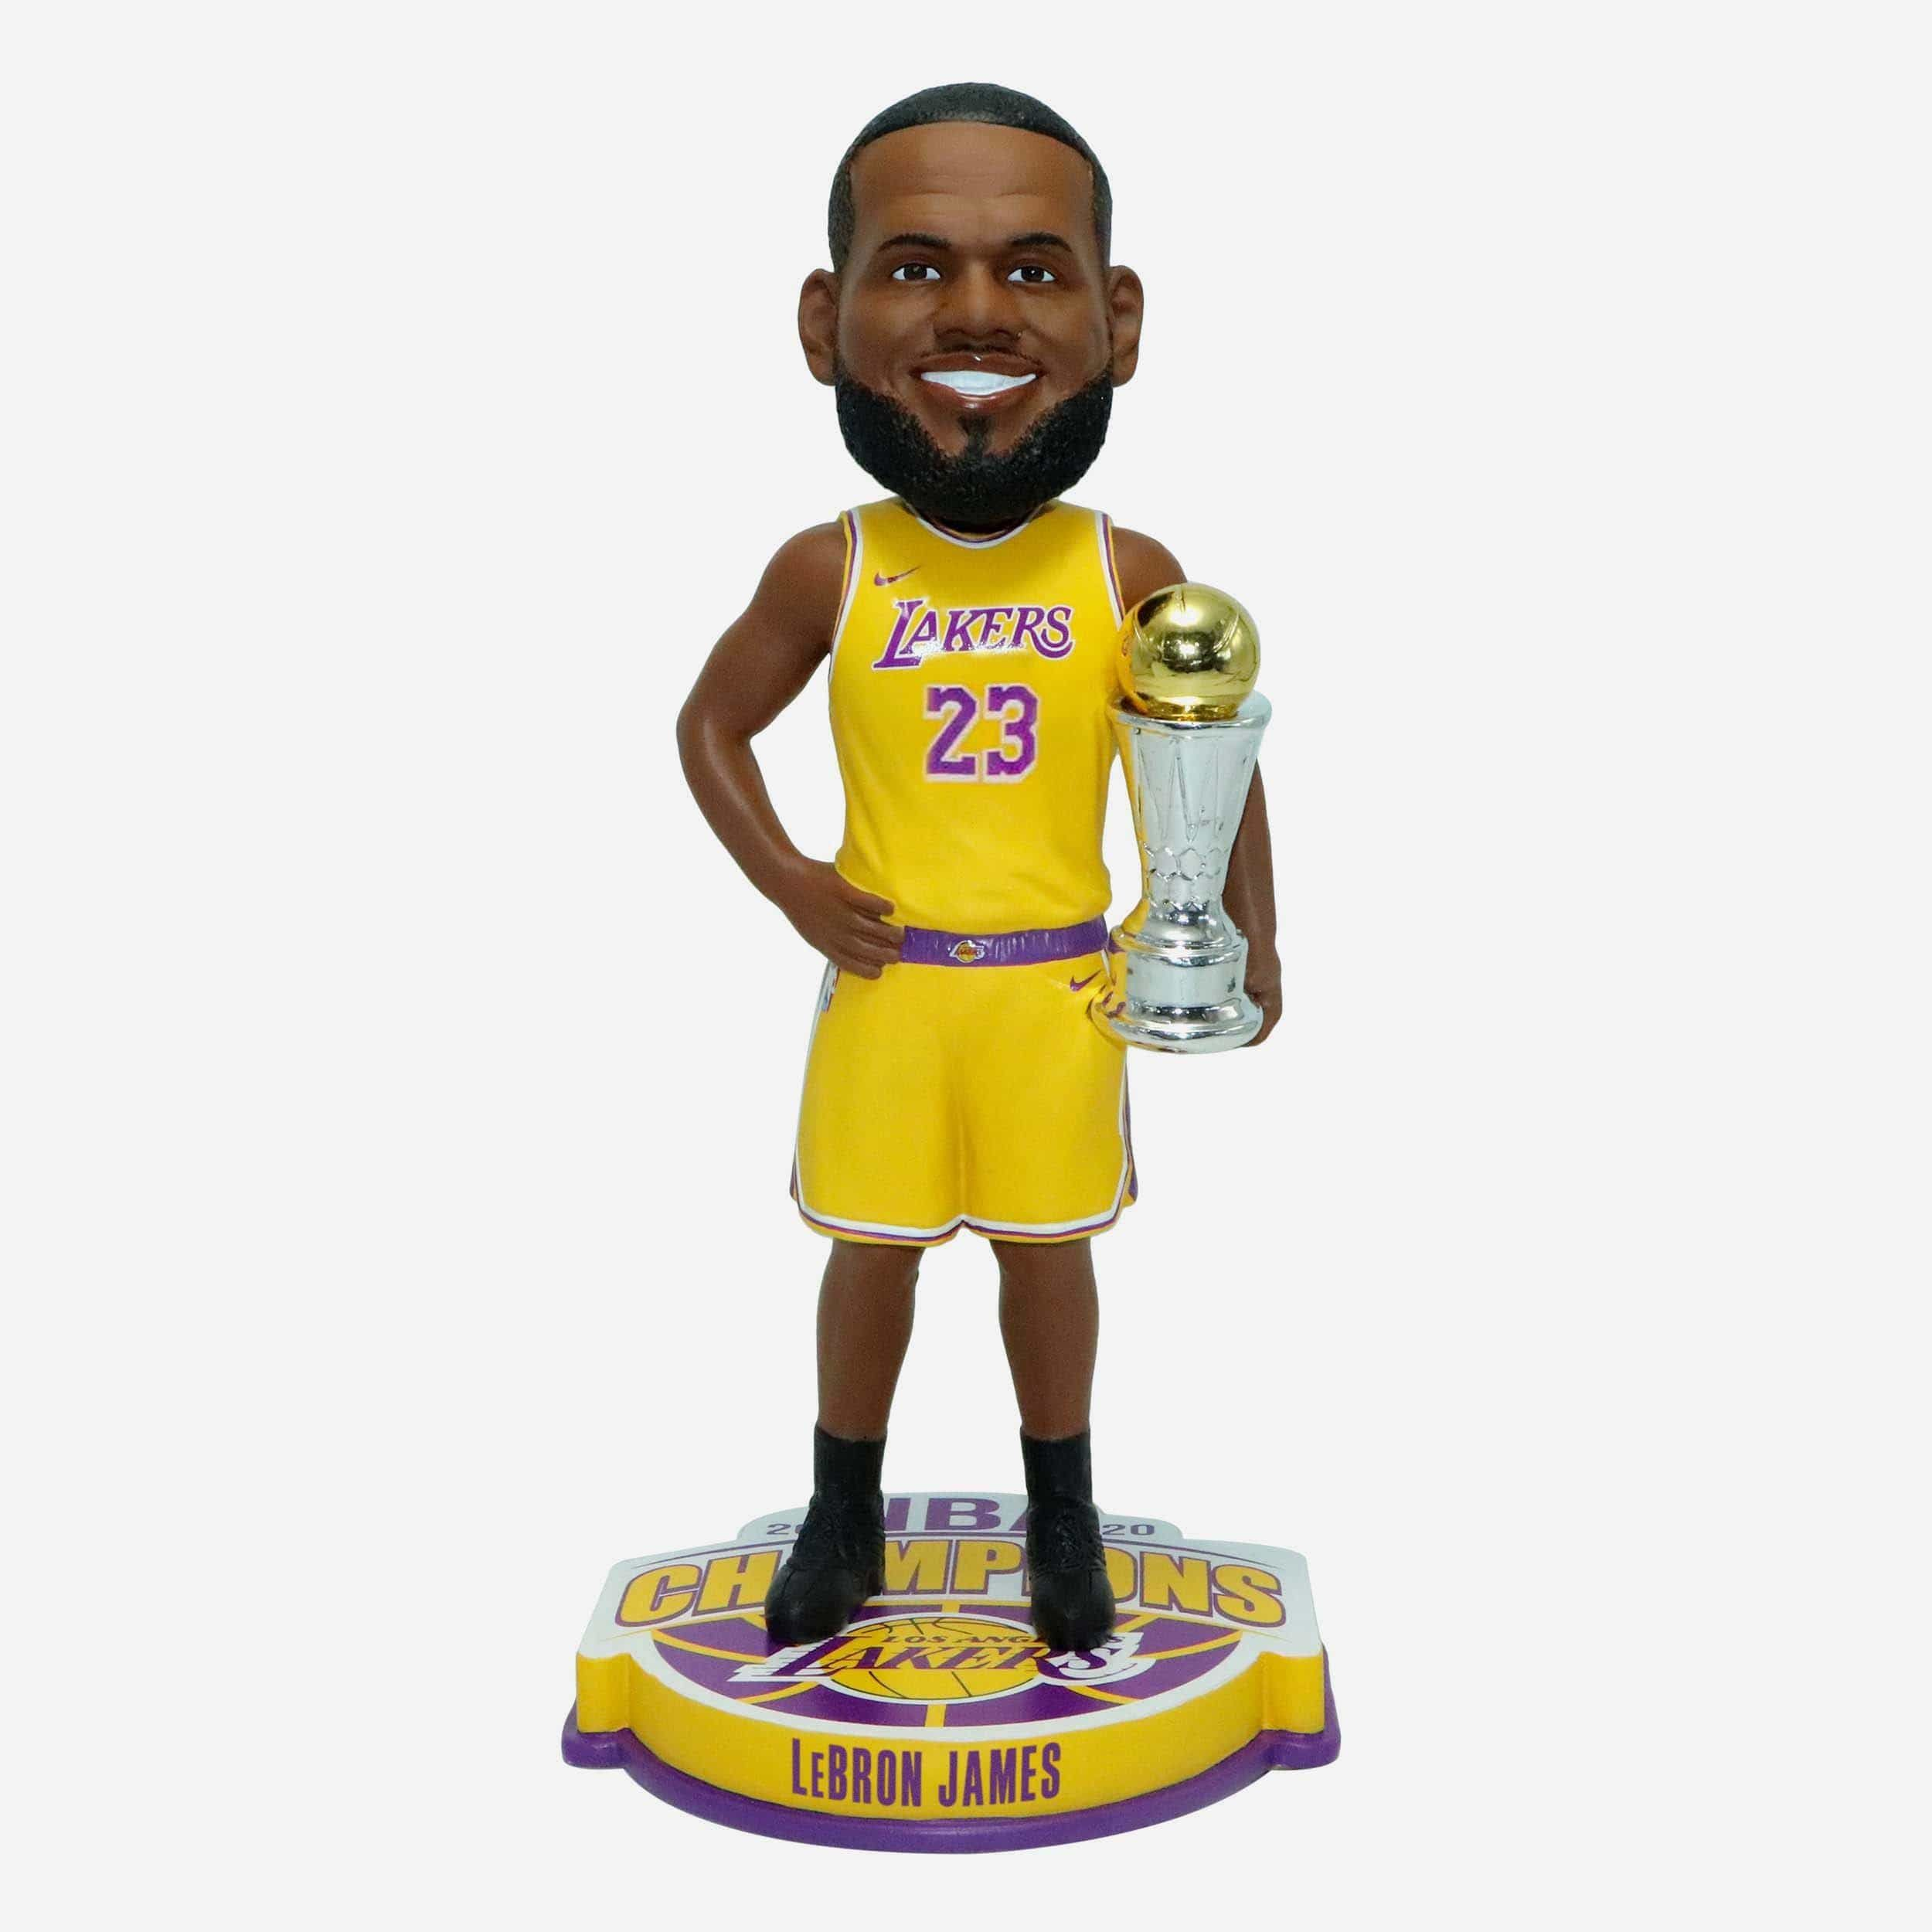 Lebron James Los Angeles Lakers 2020 Nba Champions Mvp Bobblehead In 2020 Los Angeles Lakers Lebron James Nba Champions